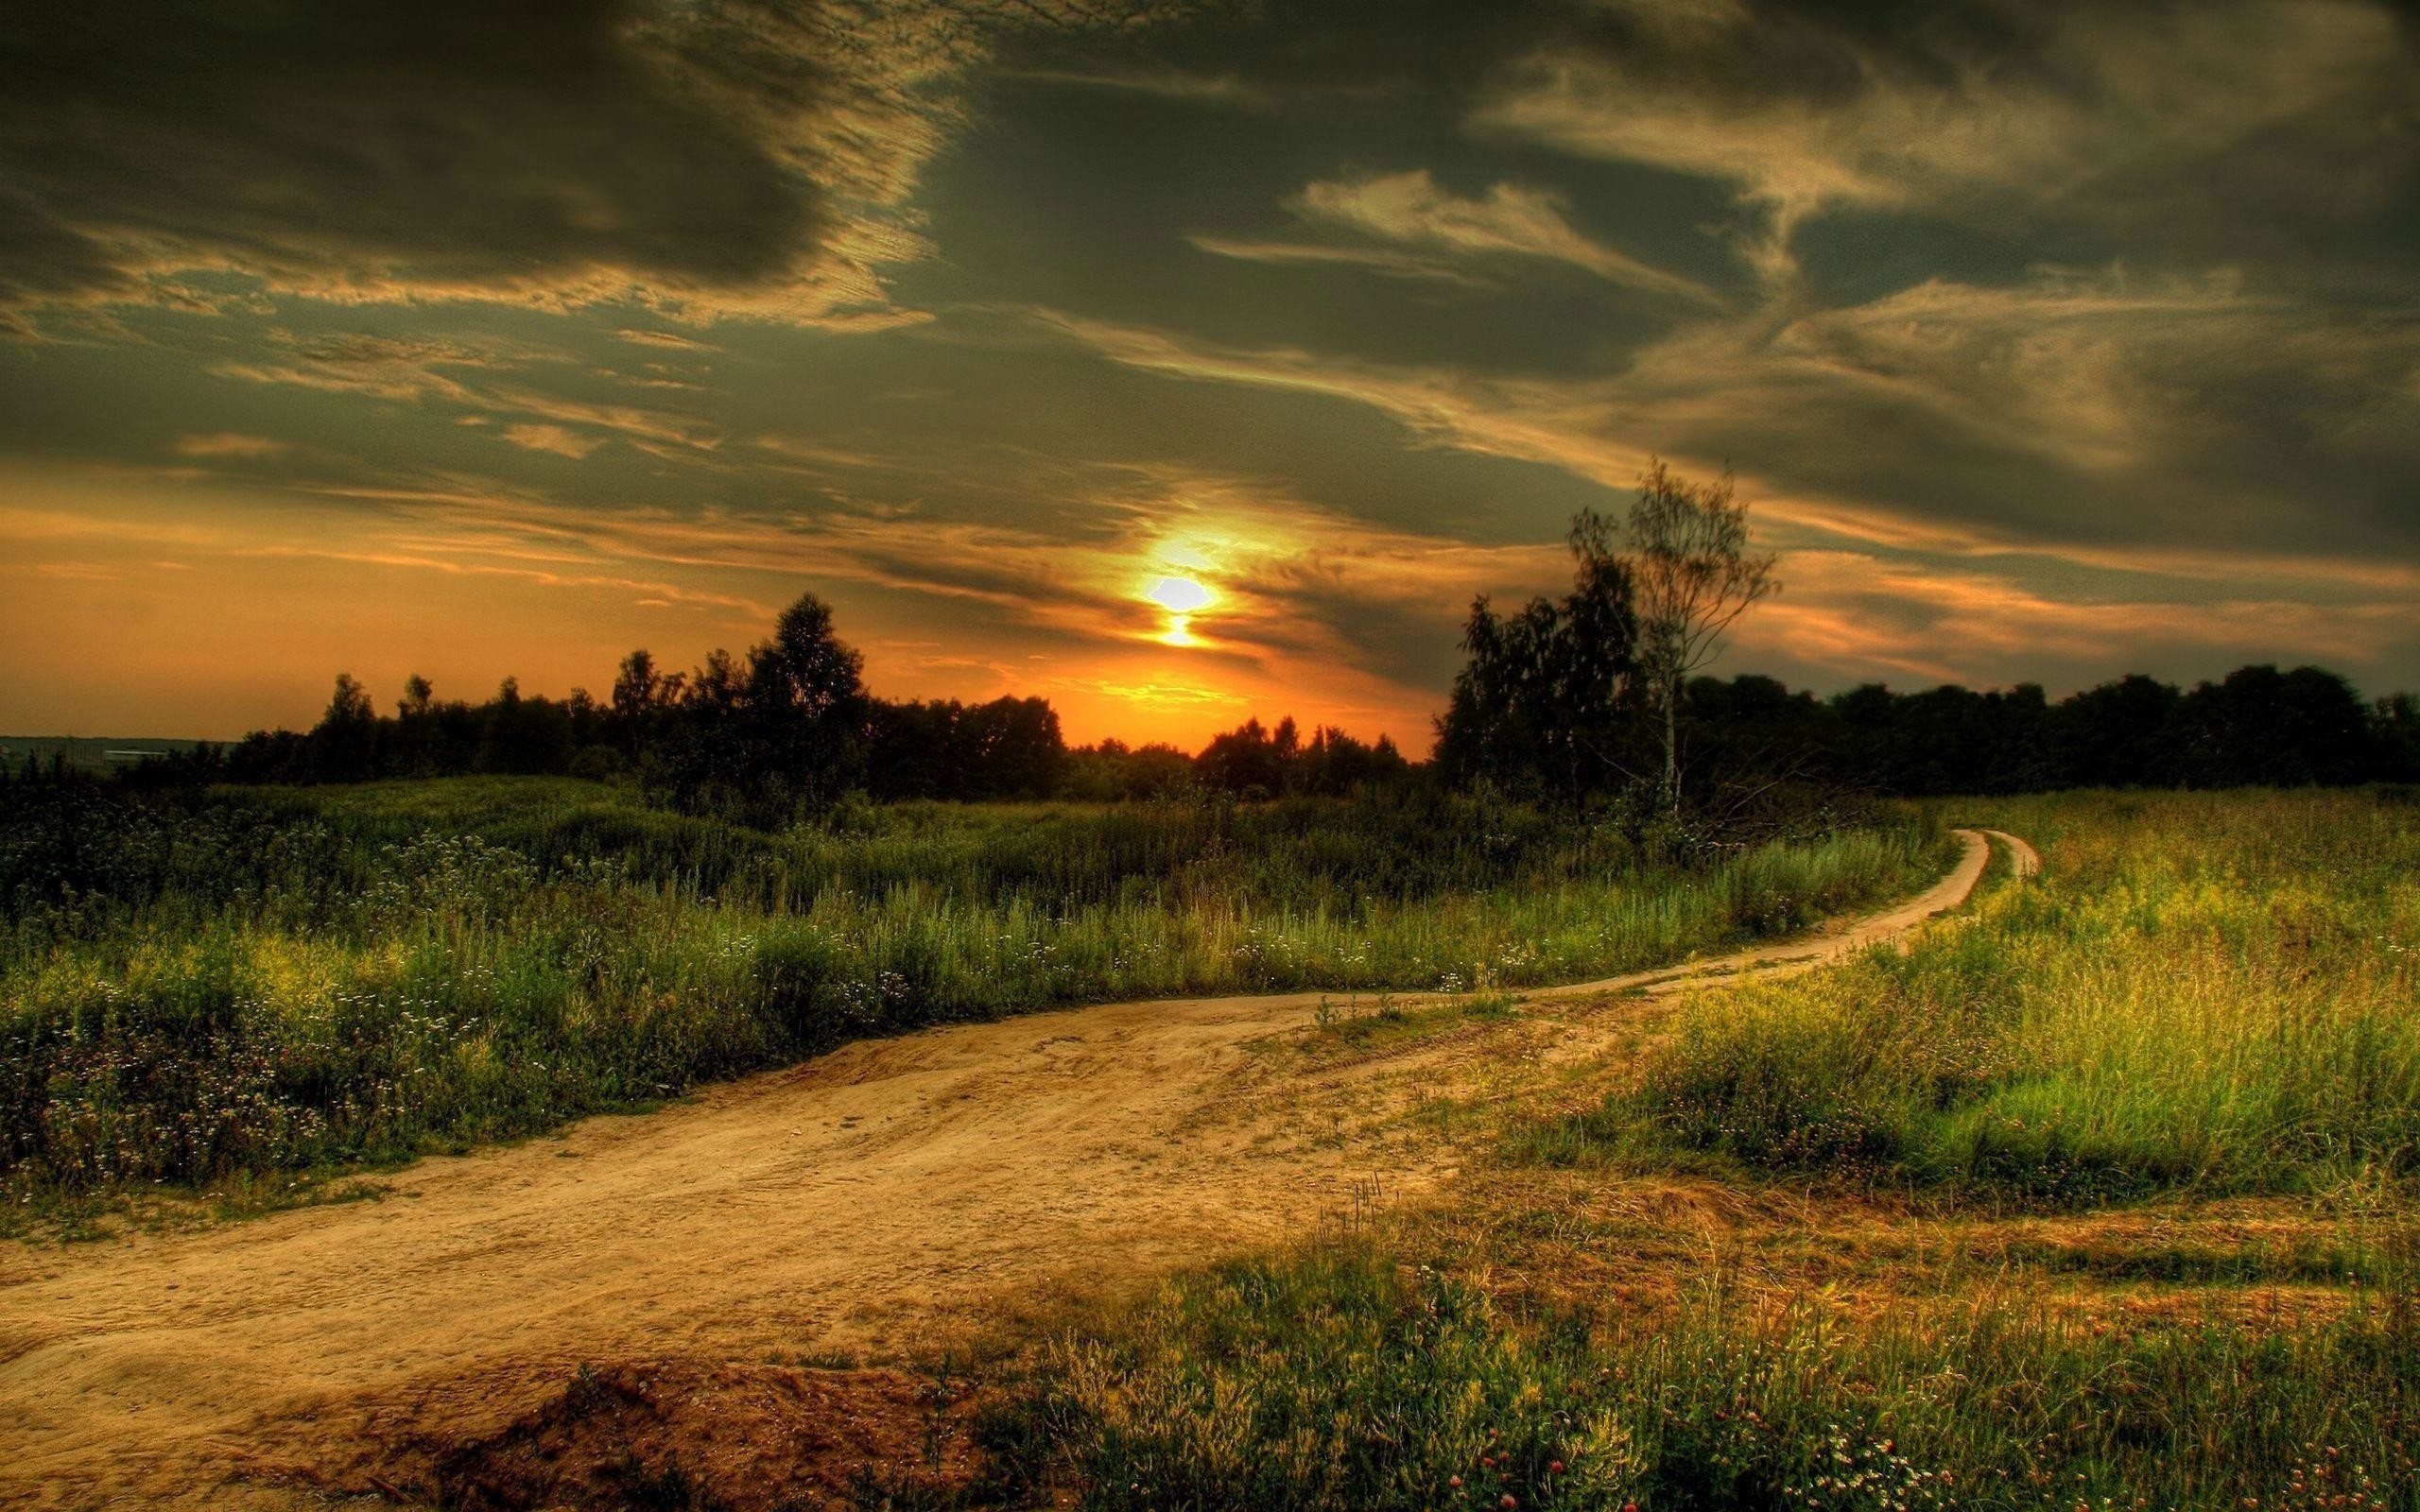 2560x1600 Country Road wallpaper - 1051254